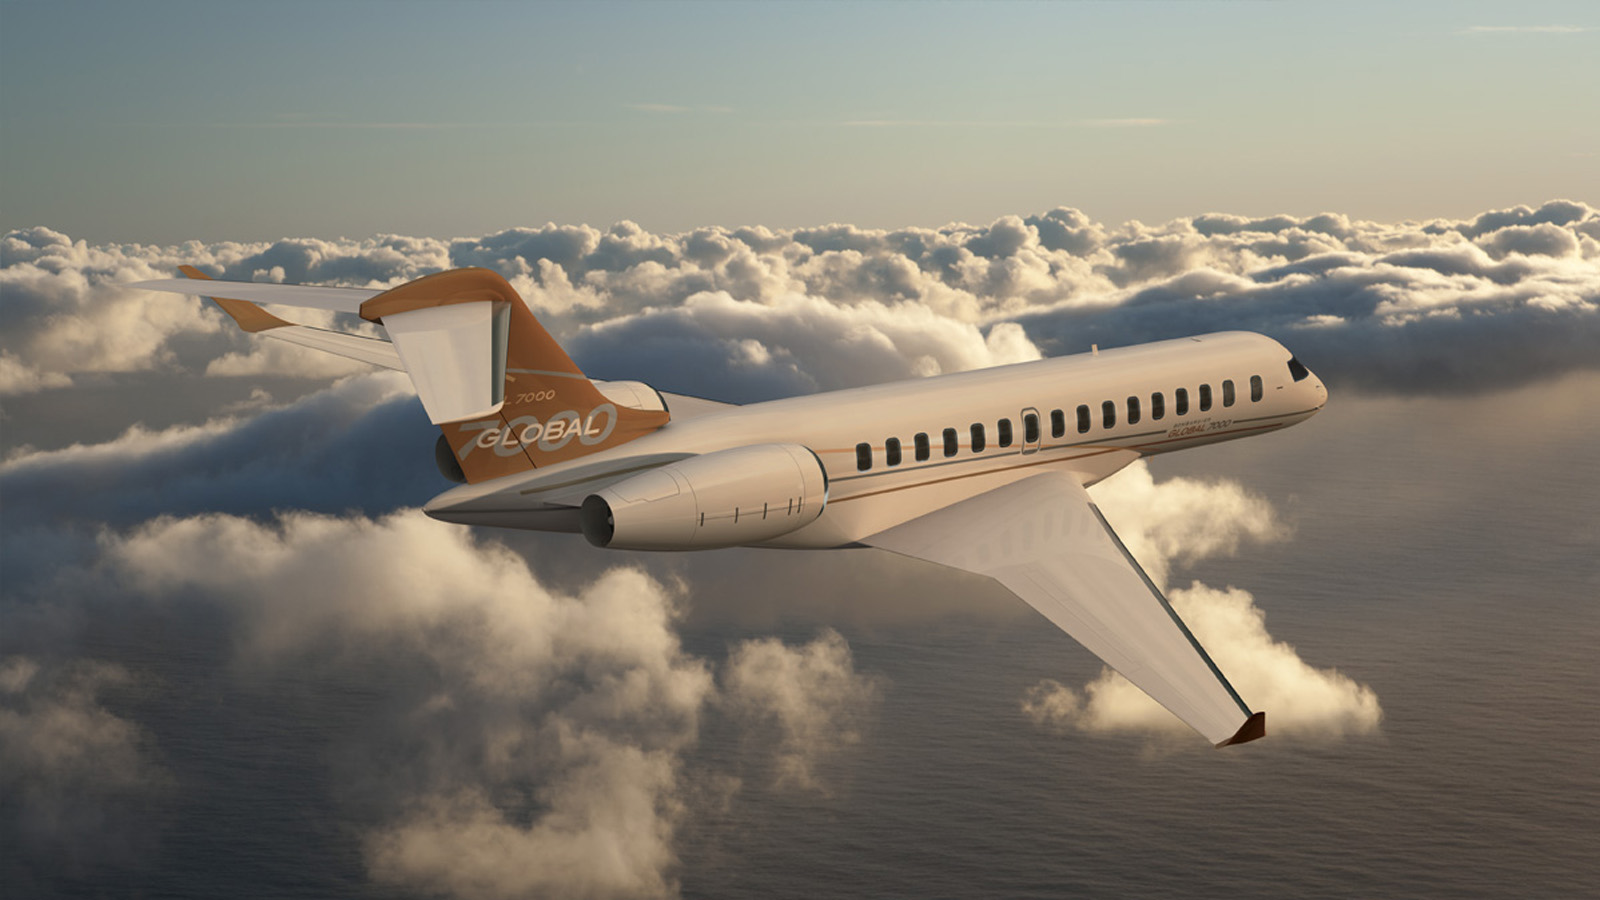 Bombardier Global Express 7000